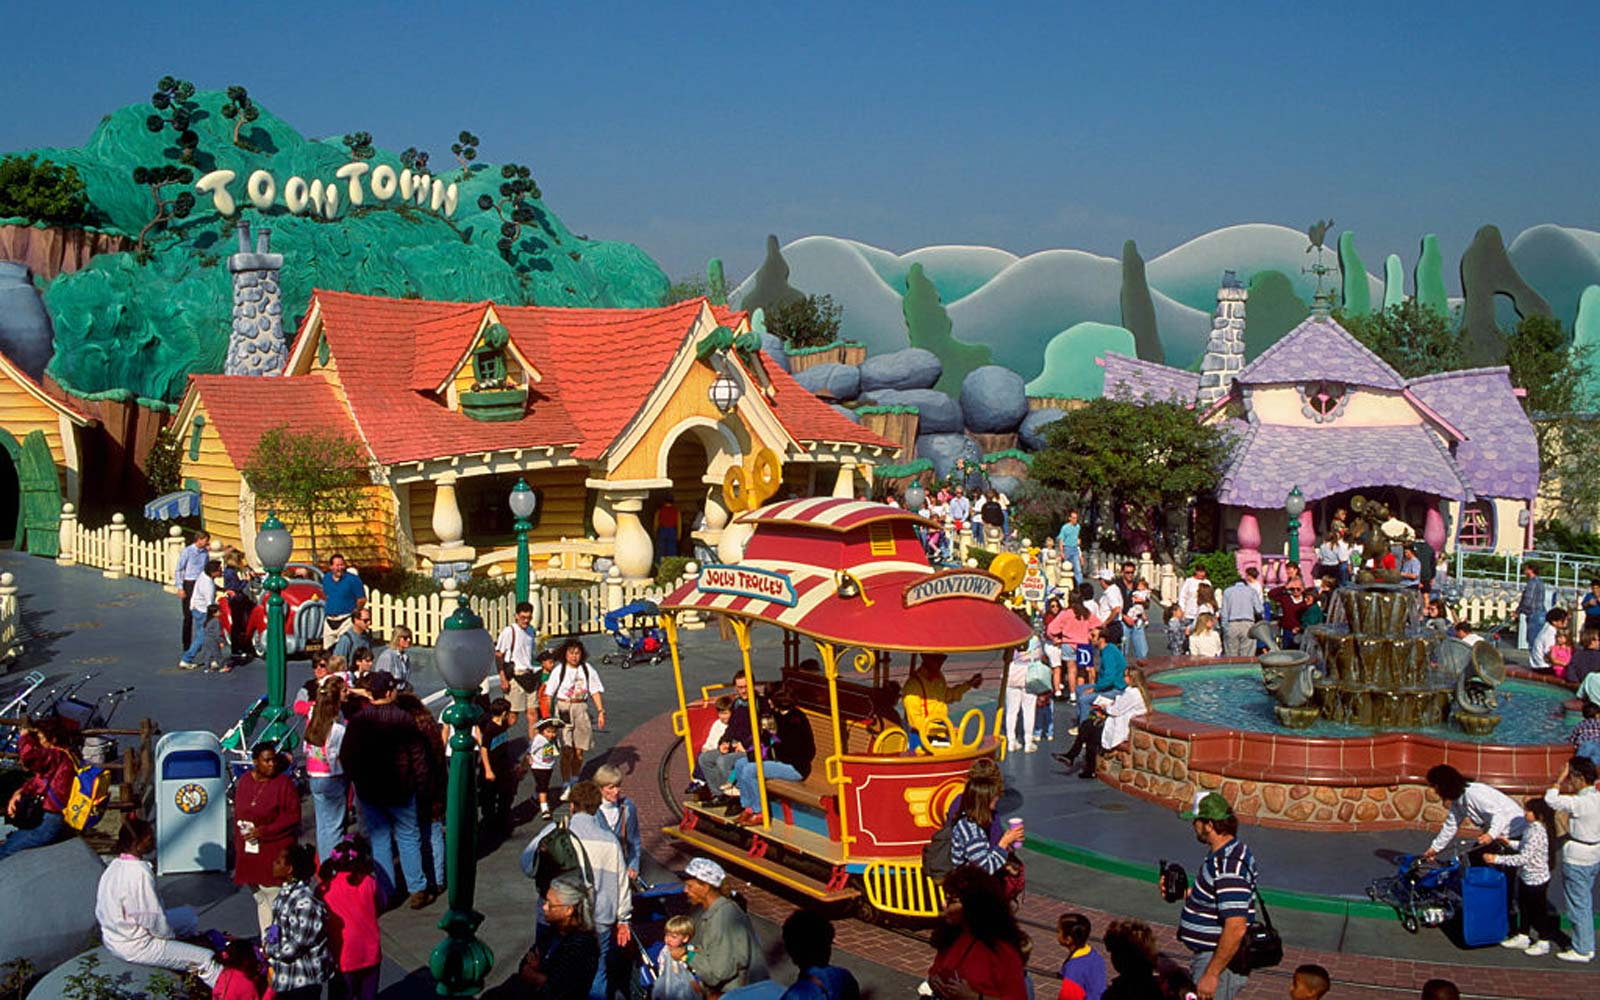 Police Investigating After a Family Brawl Breaks Out in Disneyland's Toontown